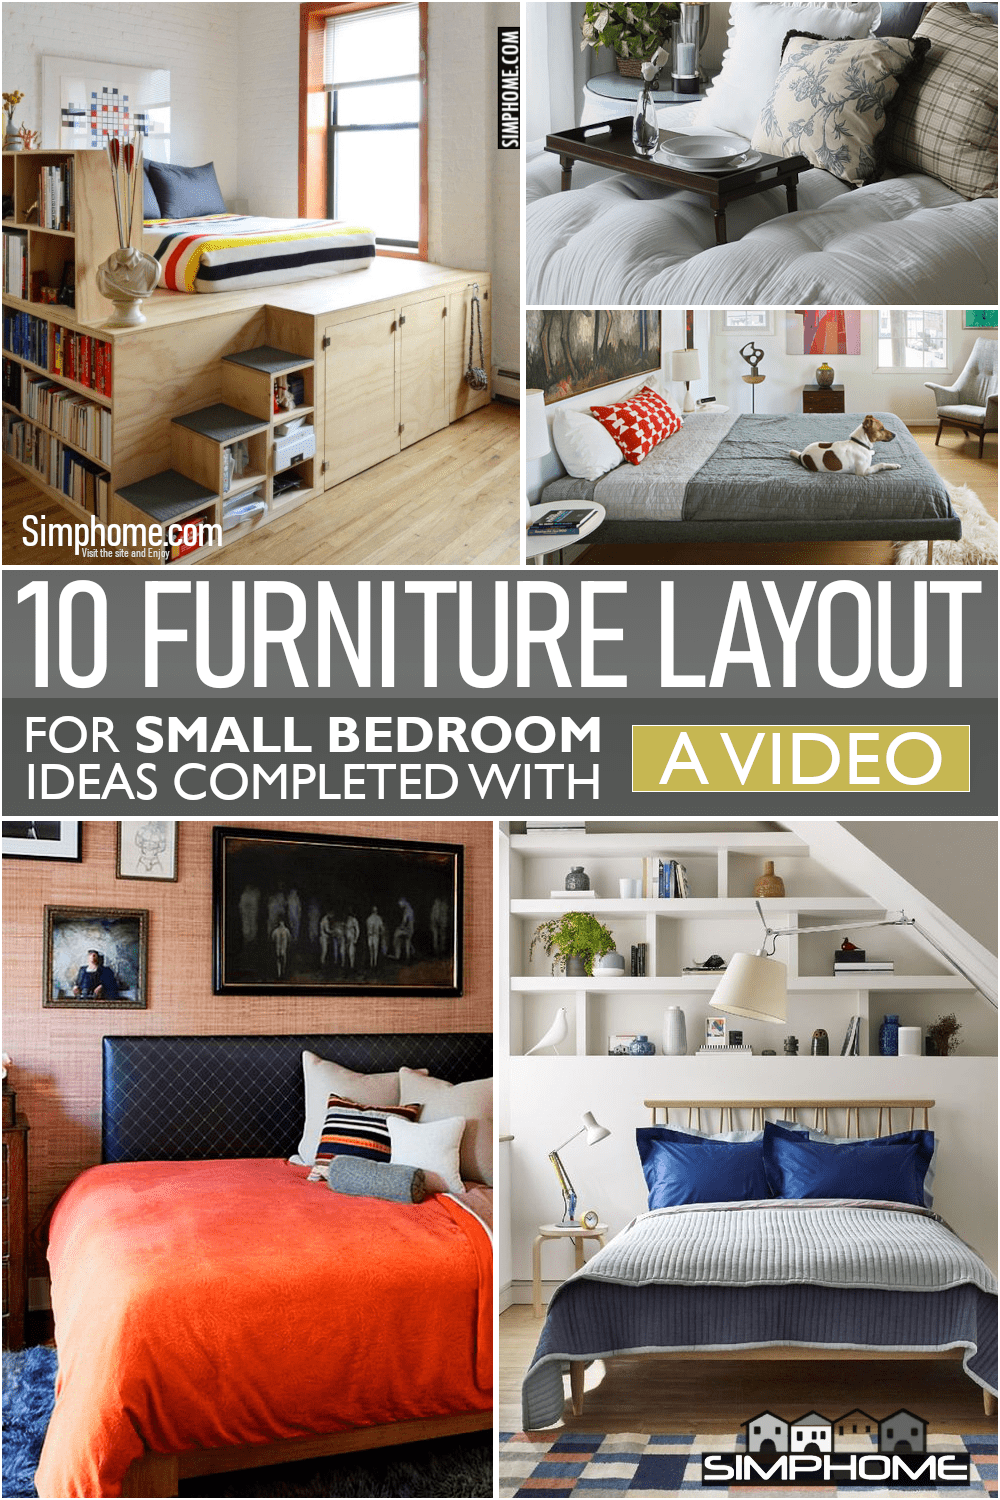 10 Furniture Layout for a Small Bedroom via Simphome.comFeatured